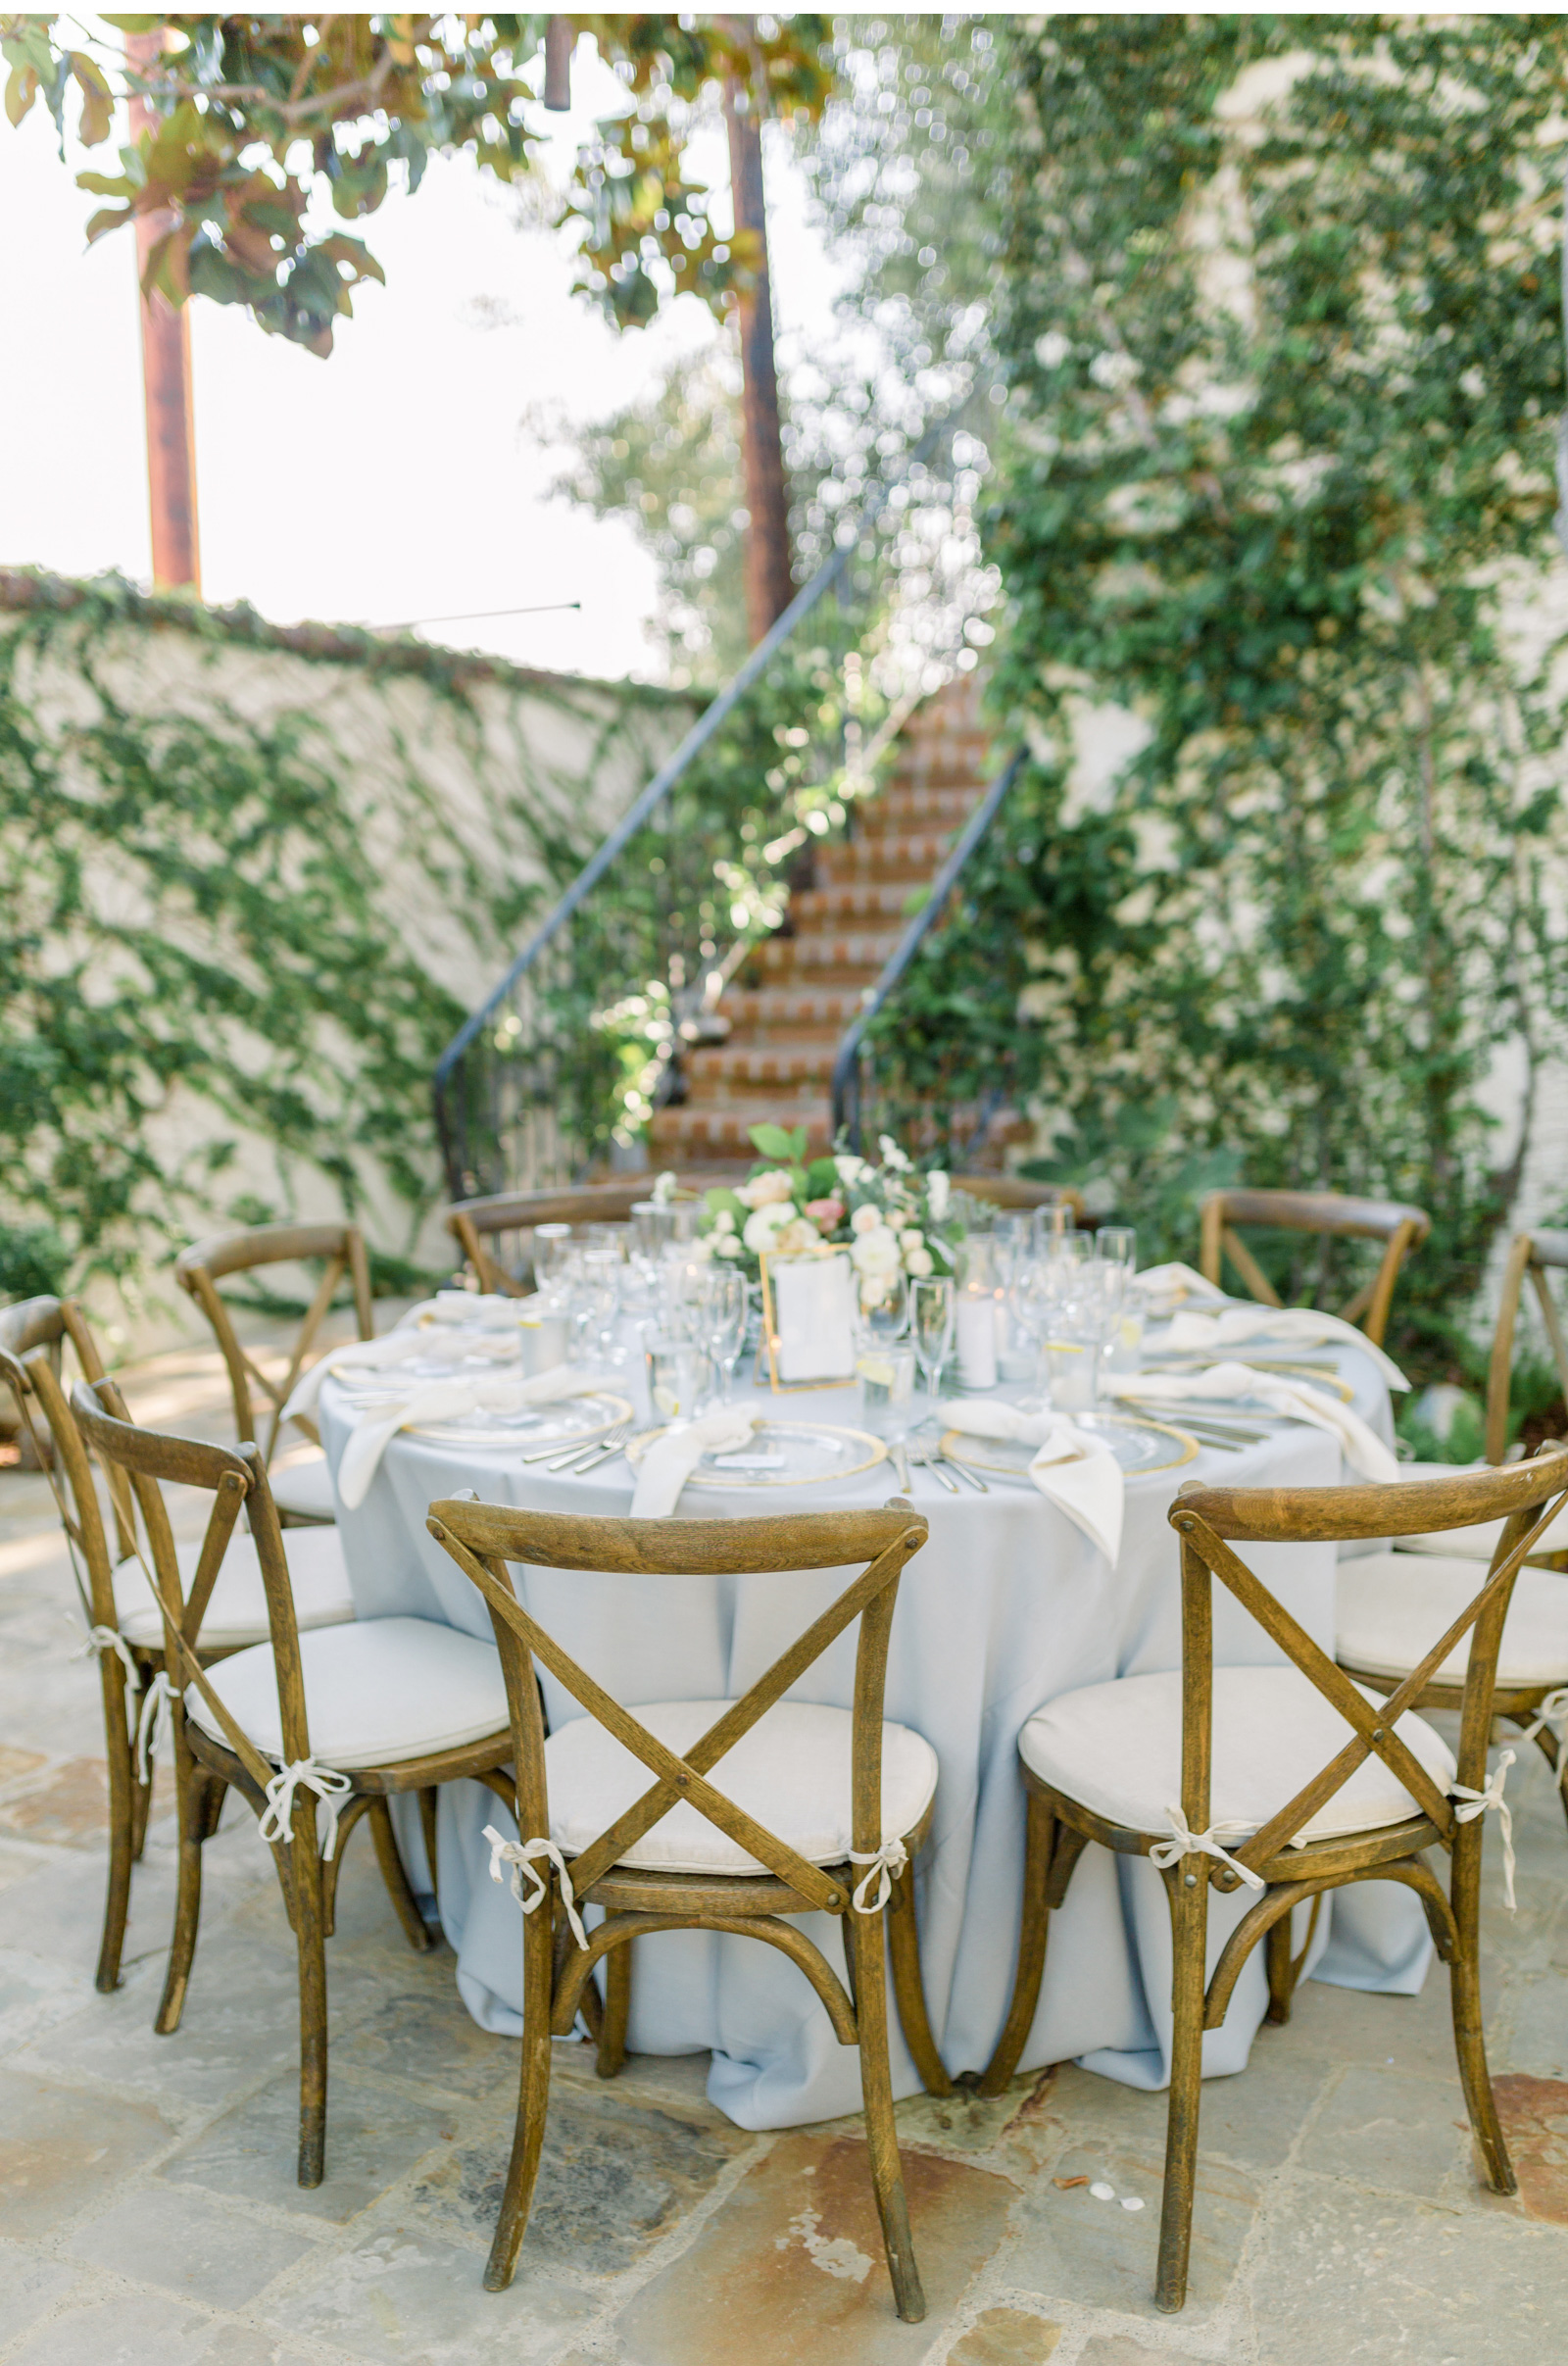 The-Villa-San-Juan-Capistrano-Wedding-Venues-Southern-California-Wedding-Photographer-Natalie-Schutt-Photographer_10.jpg